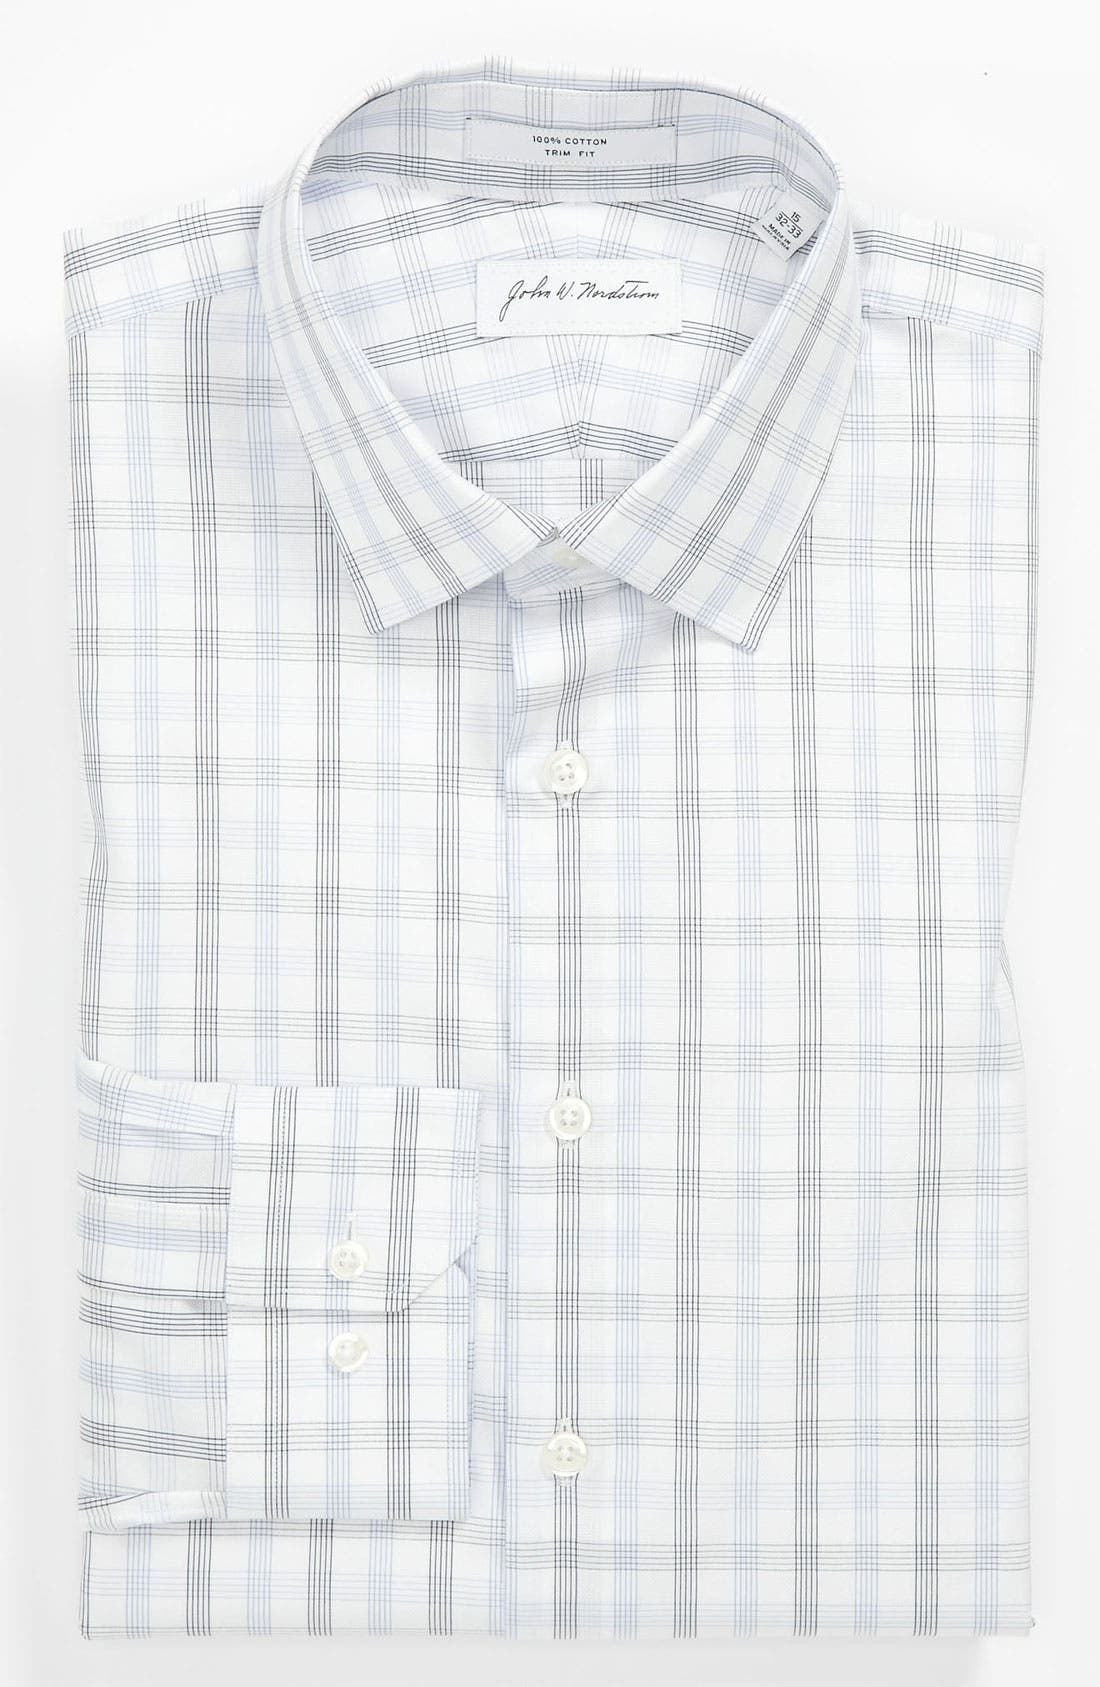 Alternate Image 1 Selected - John W. Nordstrom Trim Fit Dress Shirt